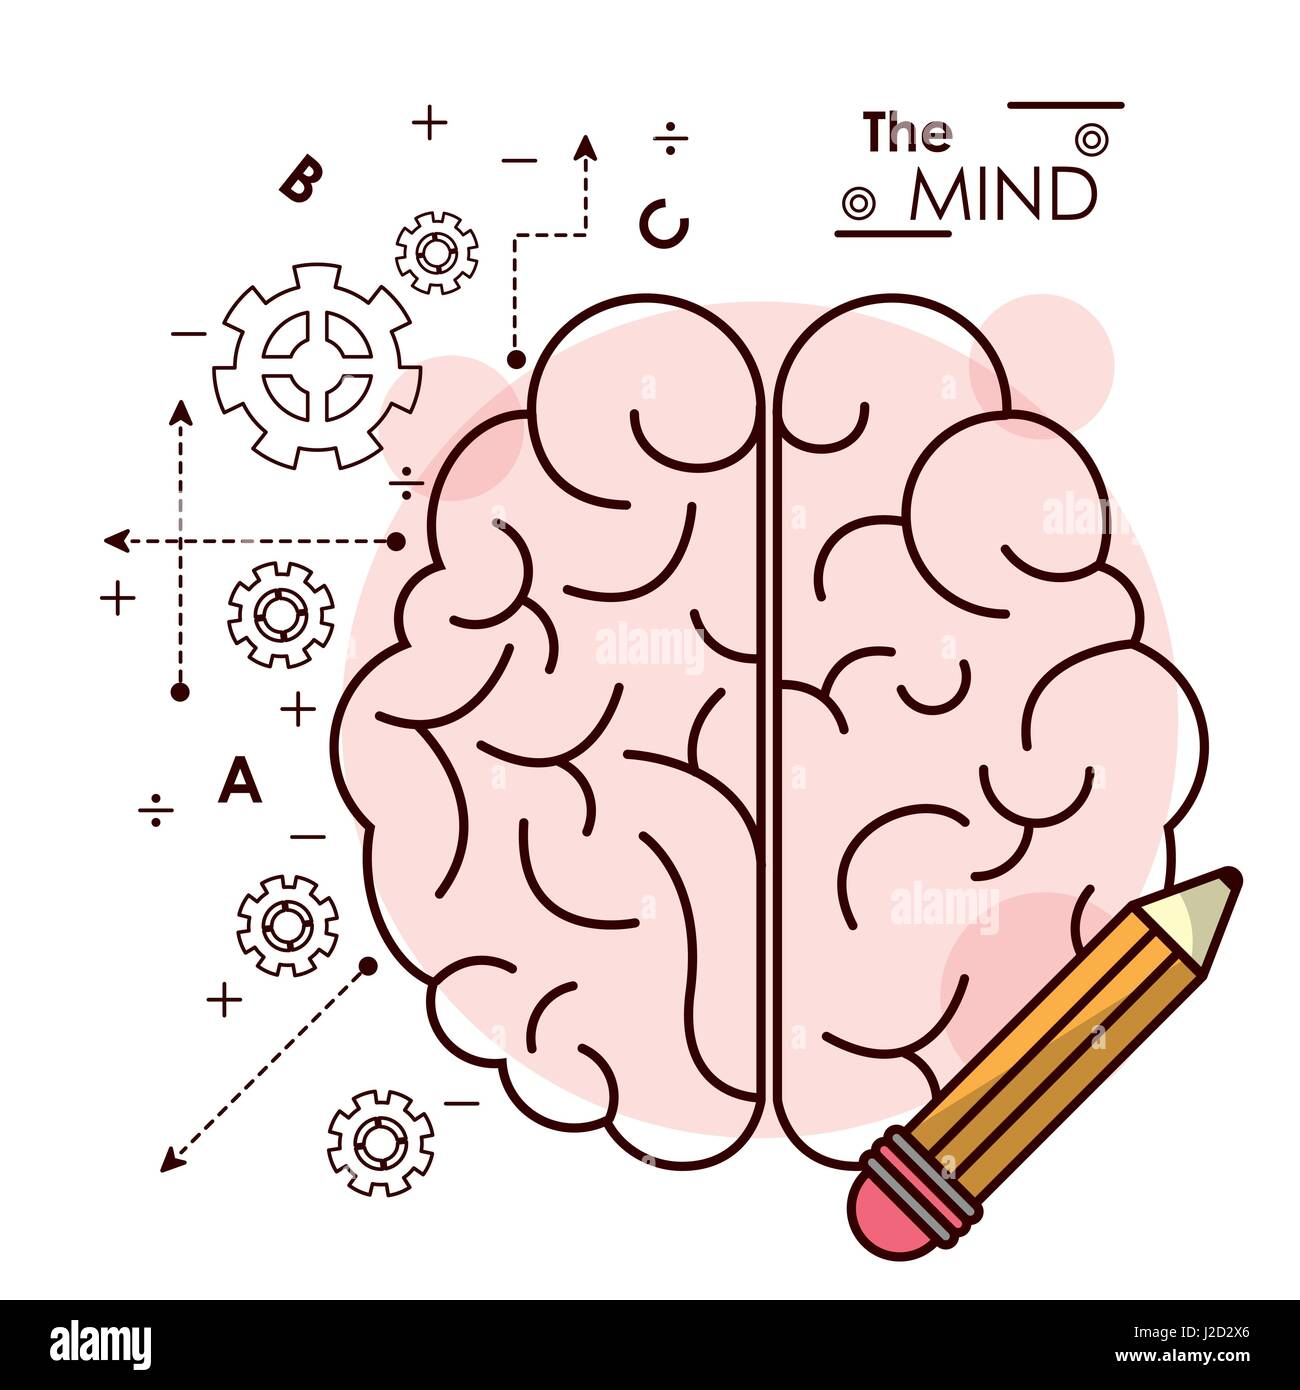 the mind brain pencil idea creativity intelligence collaboration outline - Stock Image